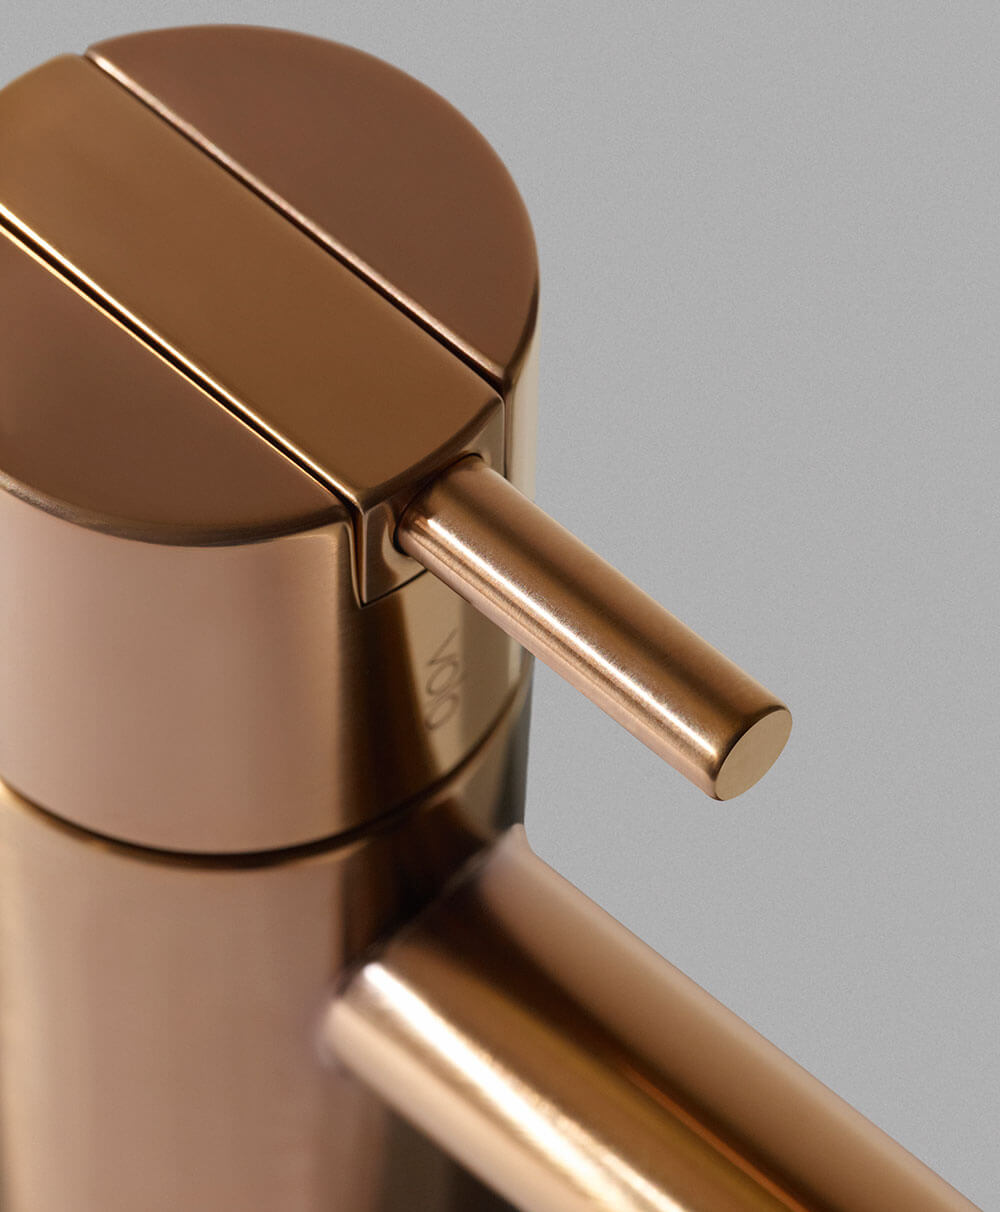 Vola Bath And Kitchen Faucets Designed By Arne Jacobsen